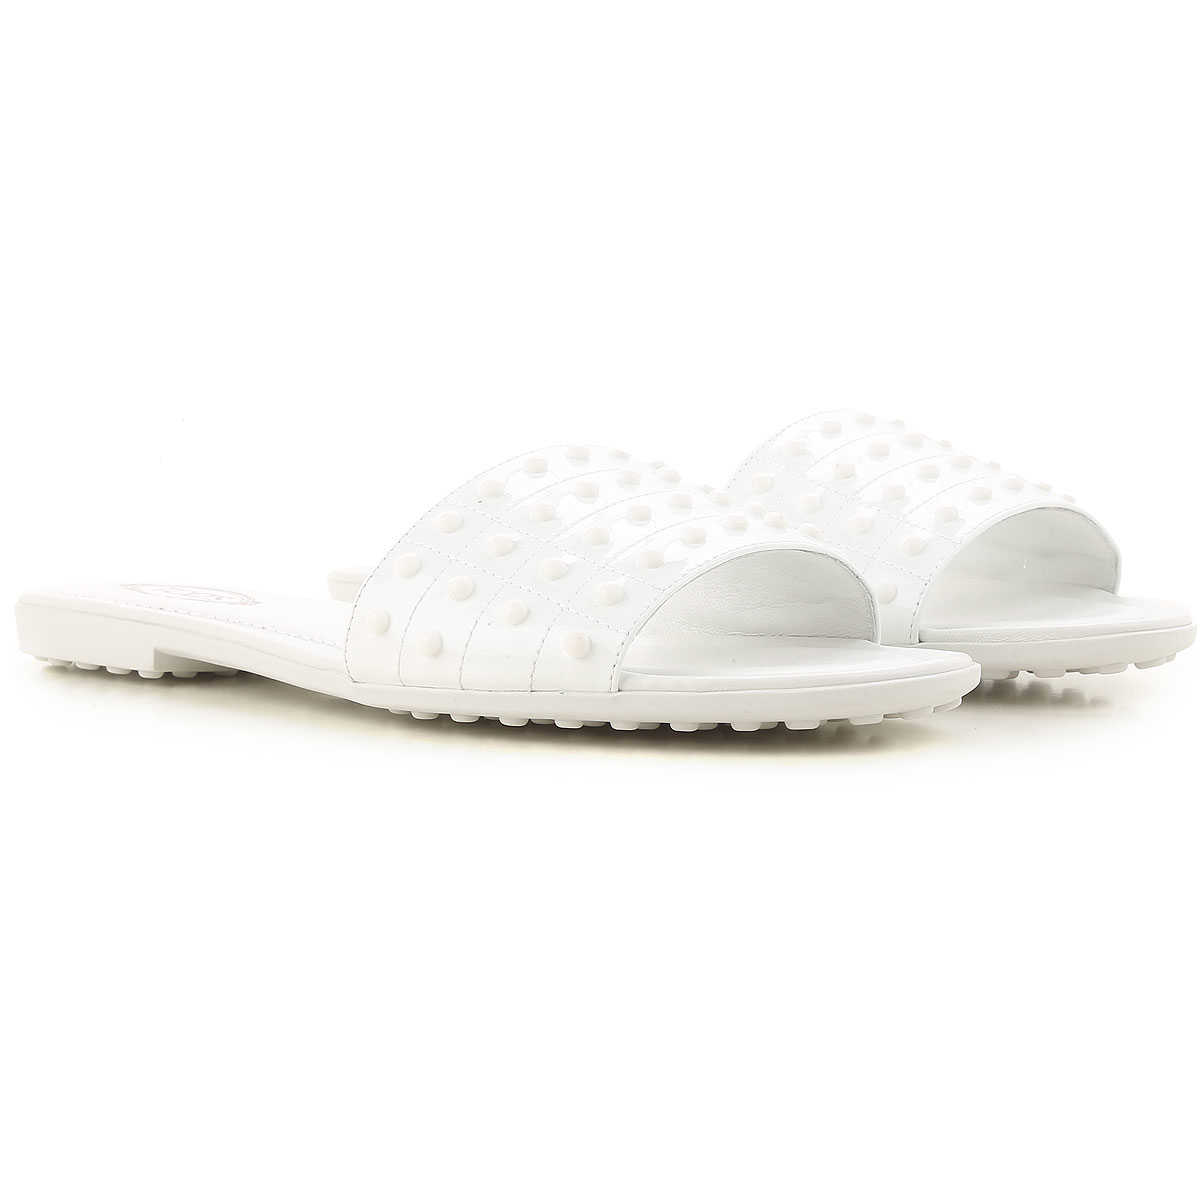 Tods Sandals for Women On Sale White SE - GOOFASH